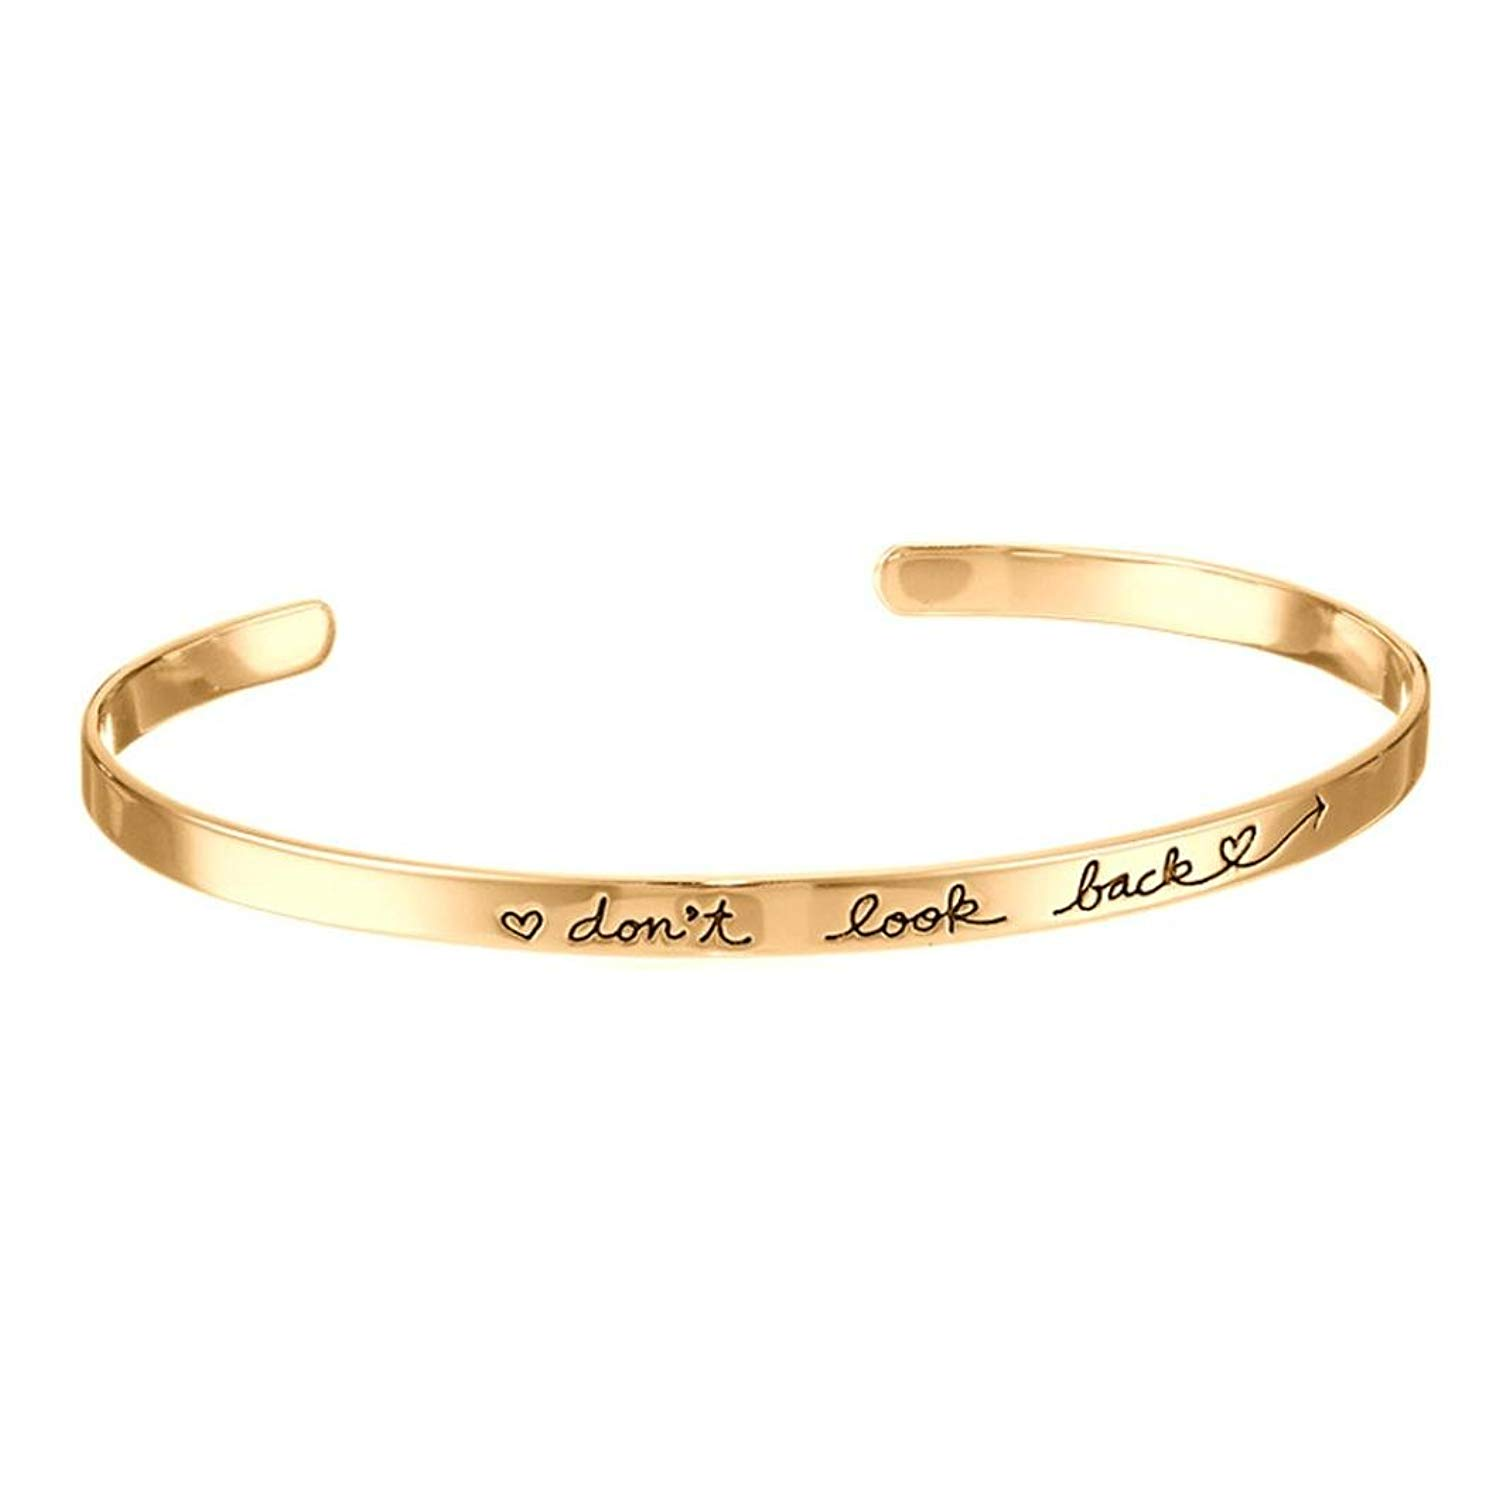 JSPOYOU Promotions! Womens Elegant Simple Cuff Bangle Jewelry Letter Bracelet By